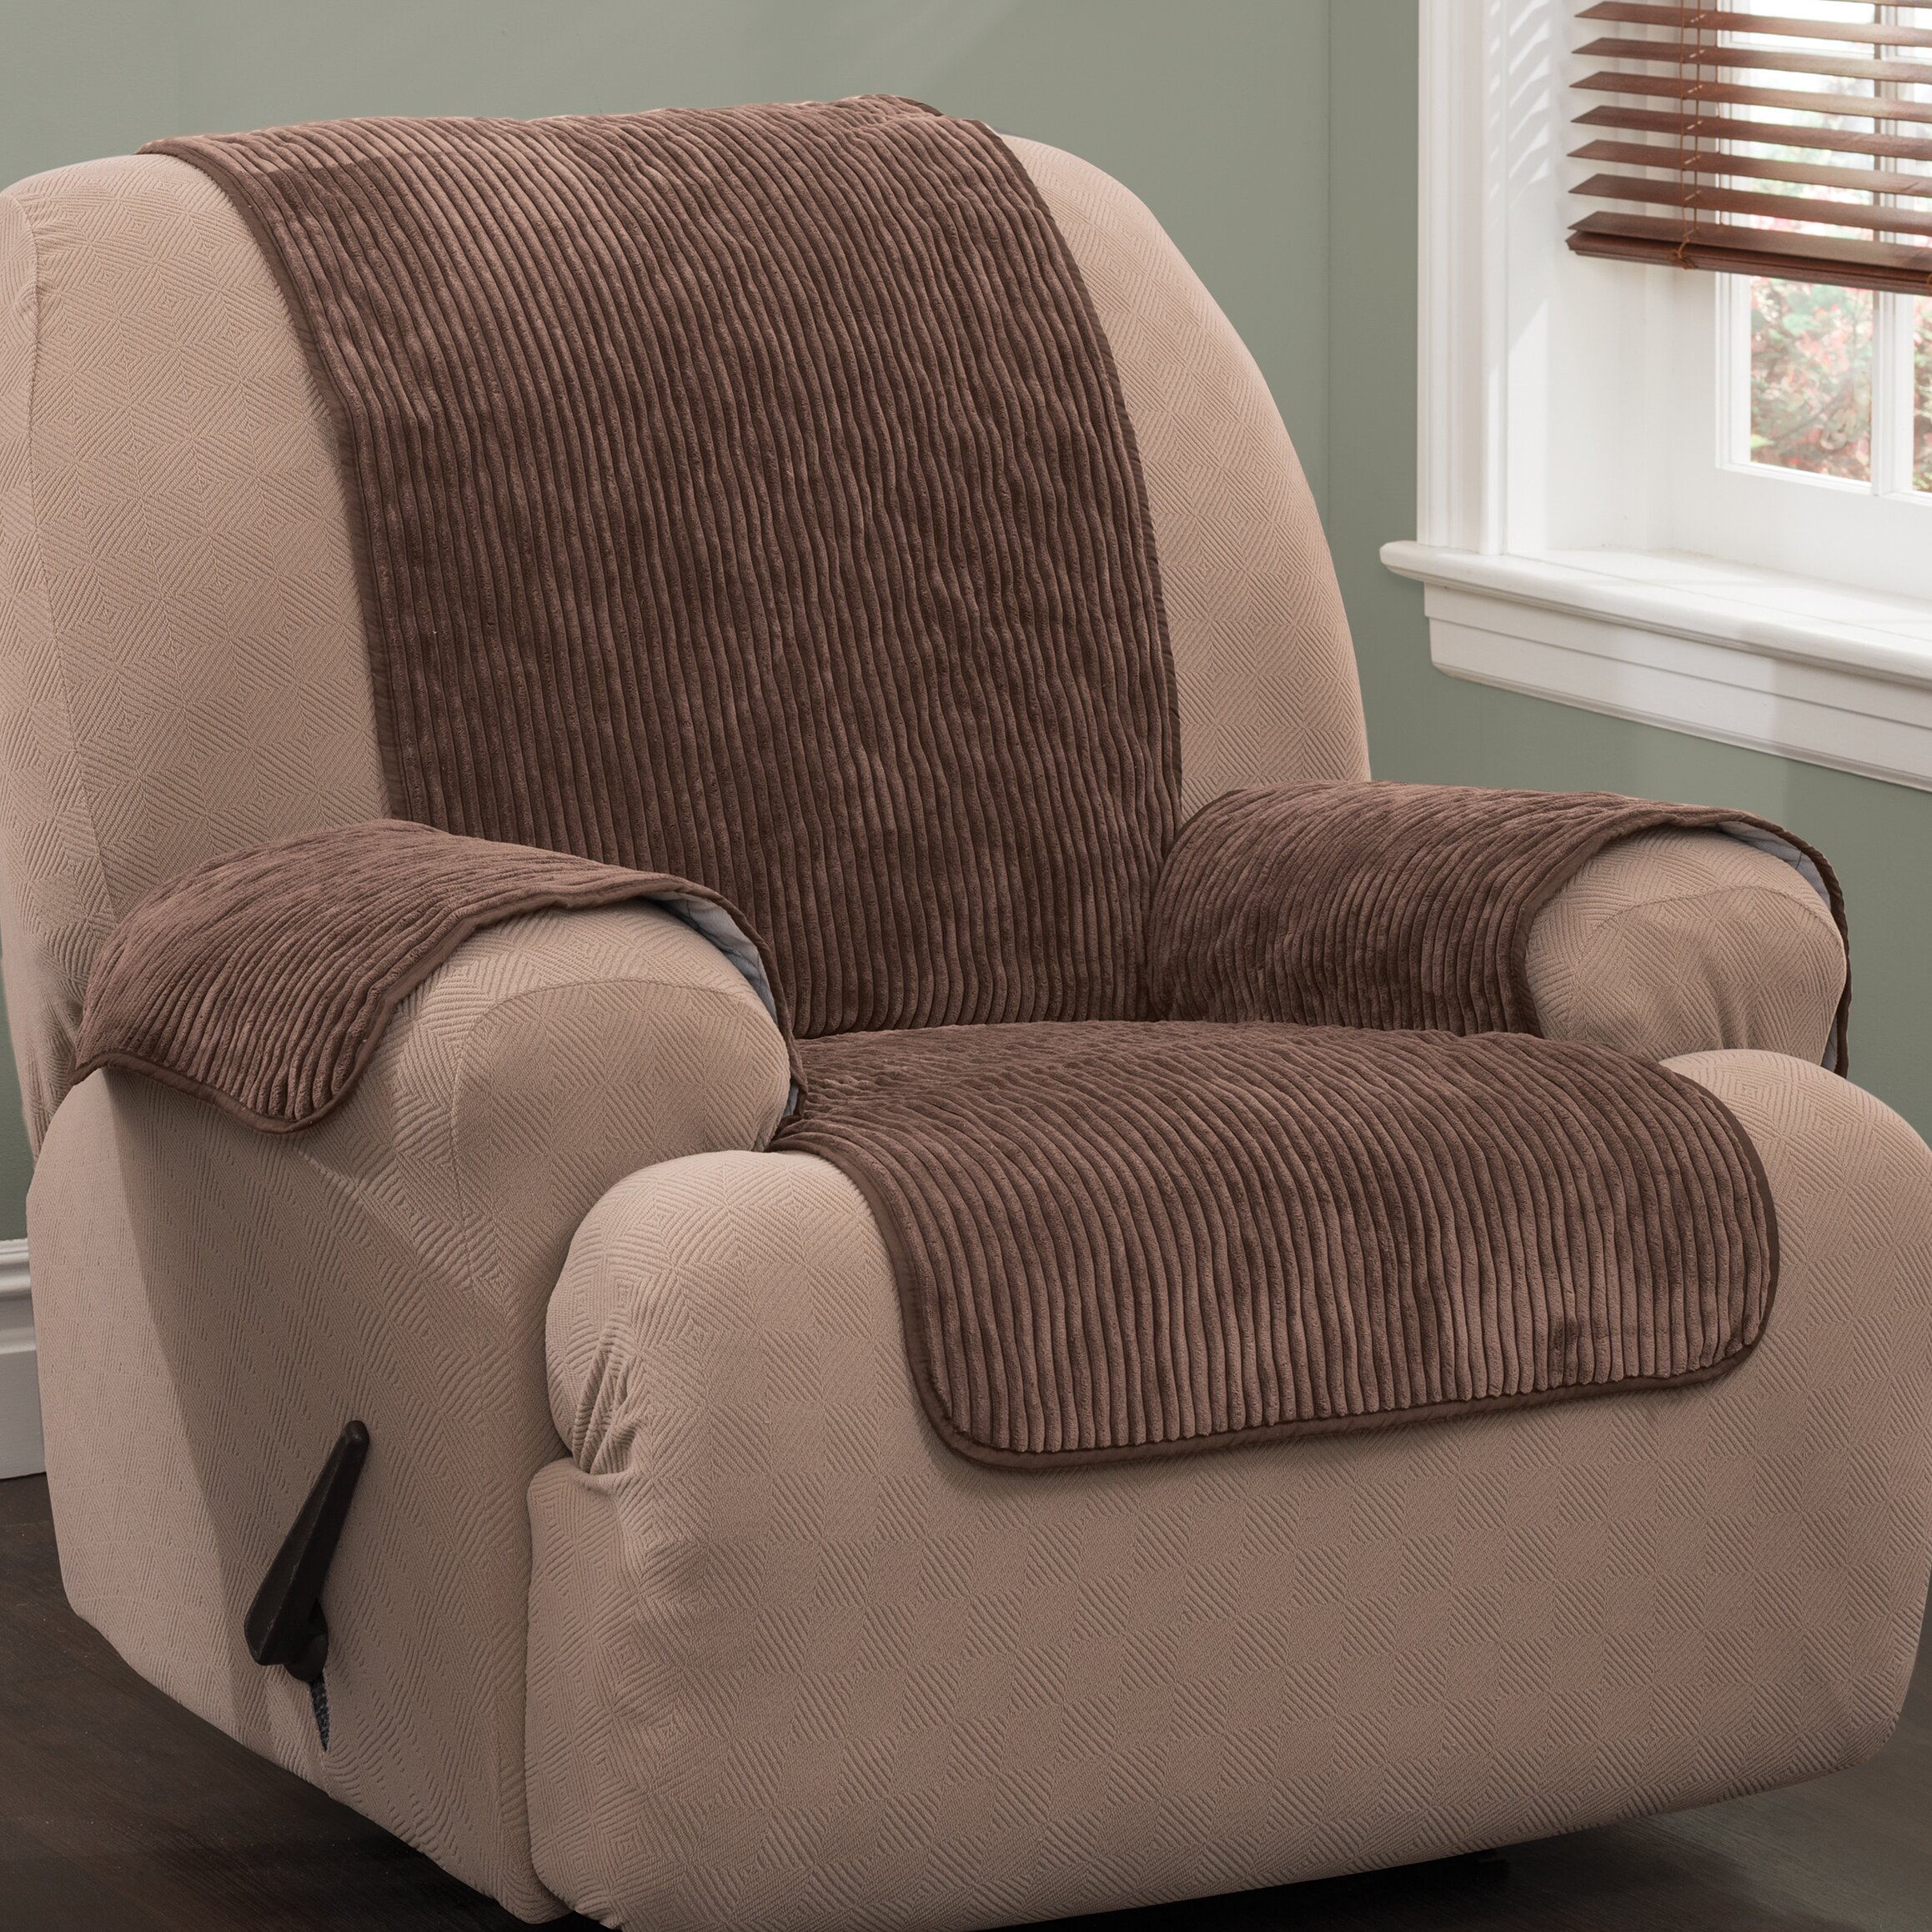 Innovative Textile Solutions Recliner Slipcover & Reviews